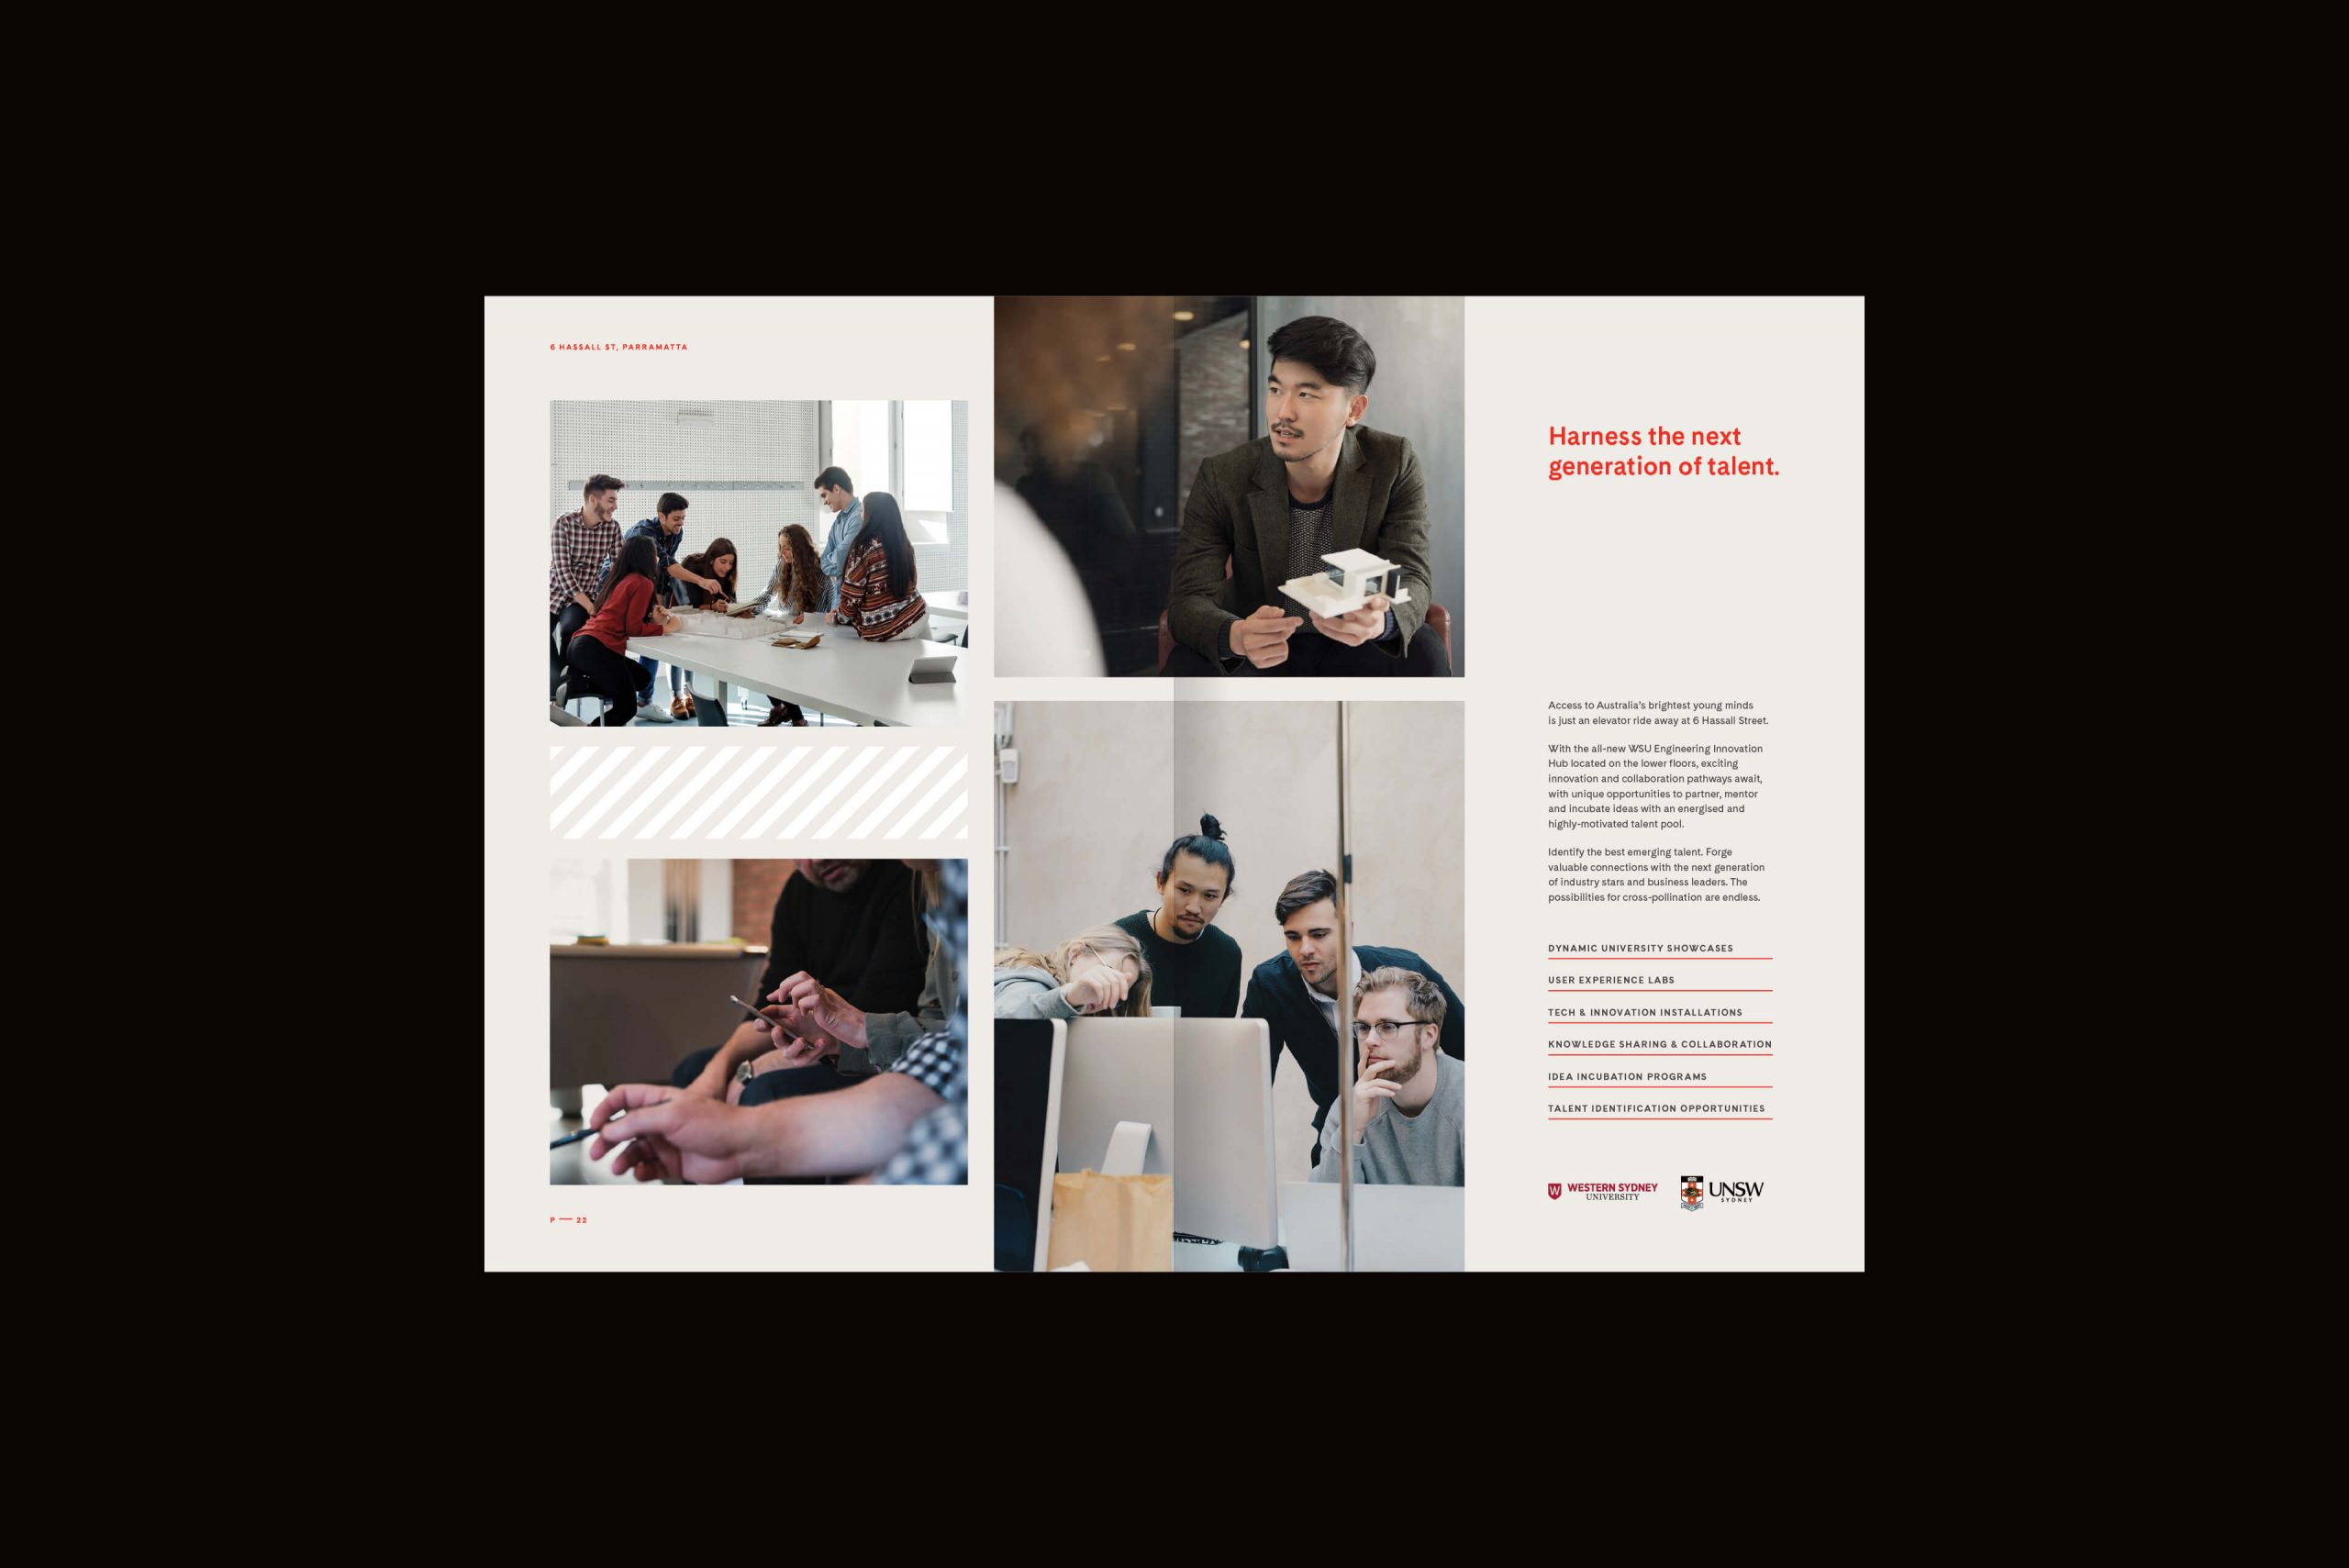 6 Hassall St Property Brand for Charter Hall - Brochure Spread 5